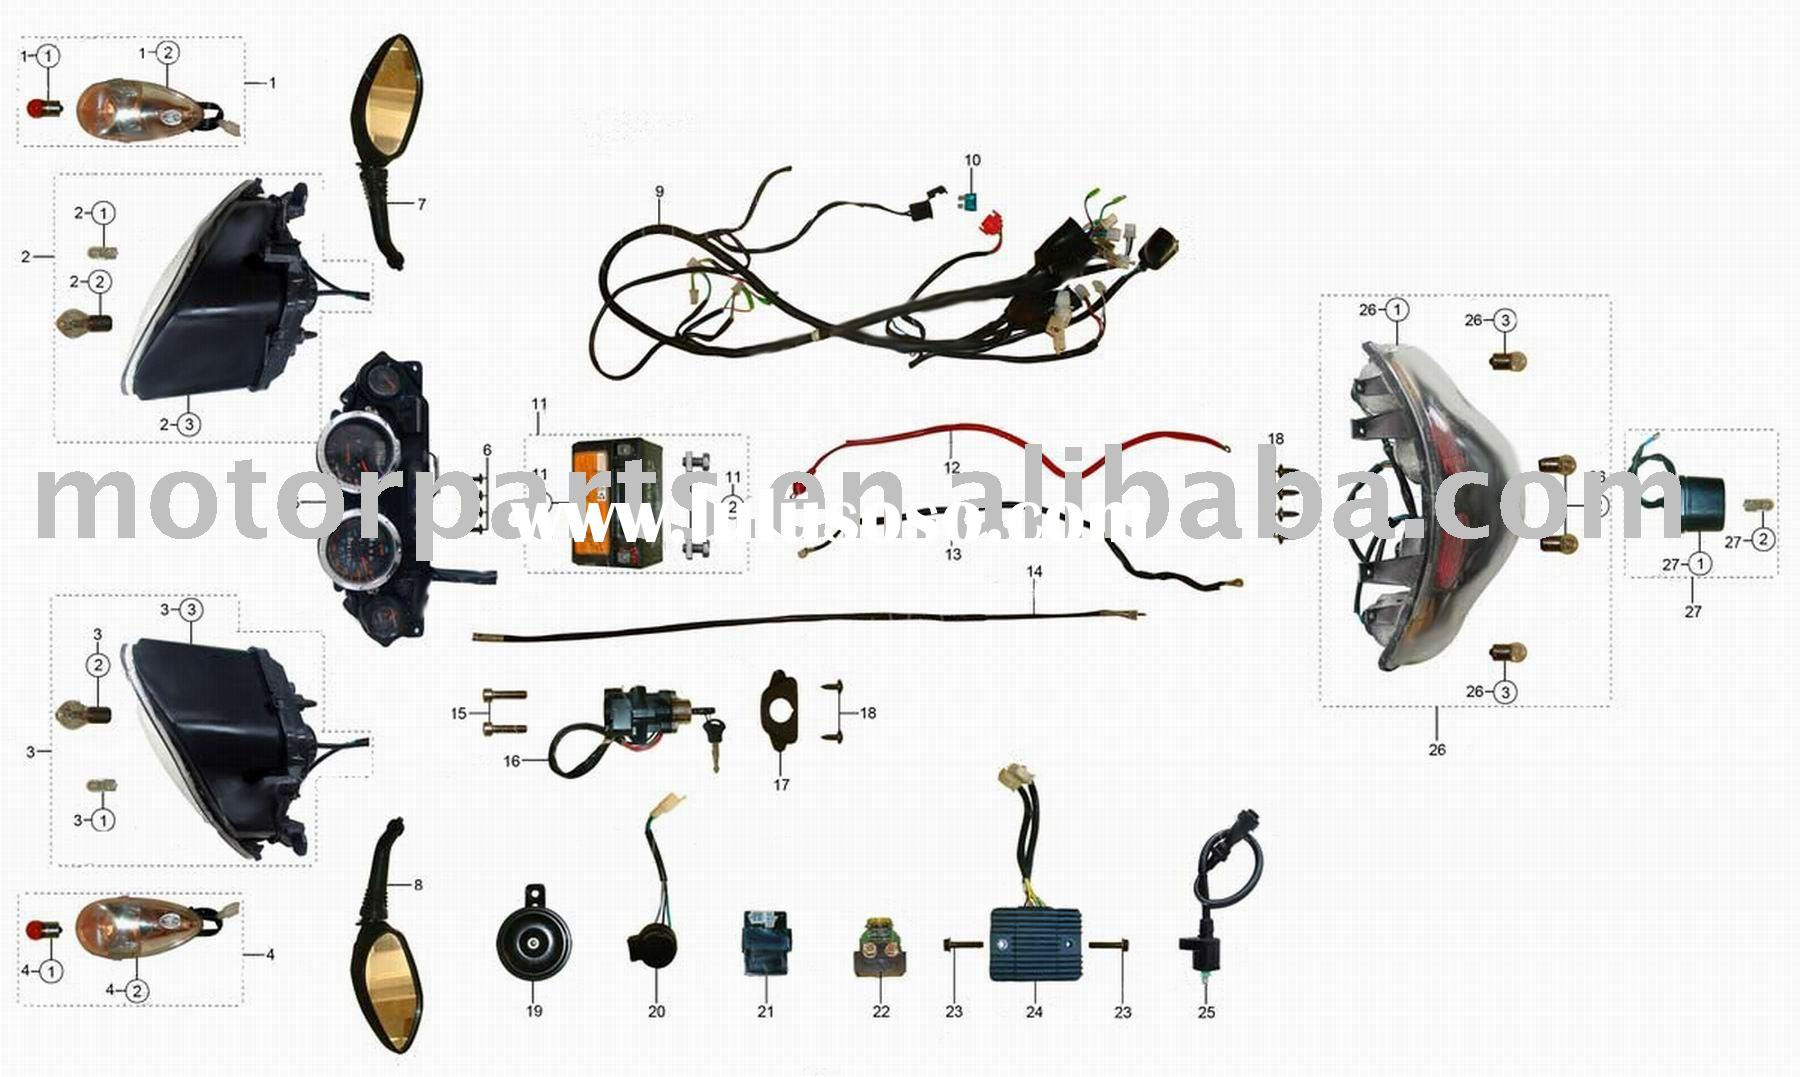 50cc scooter wiring diagram coil atv parts/motorcycle parts/motocross parts/ wiring for ... #2